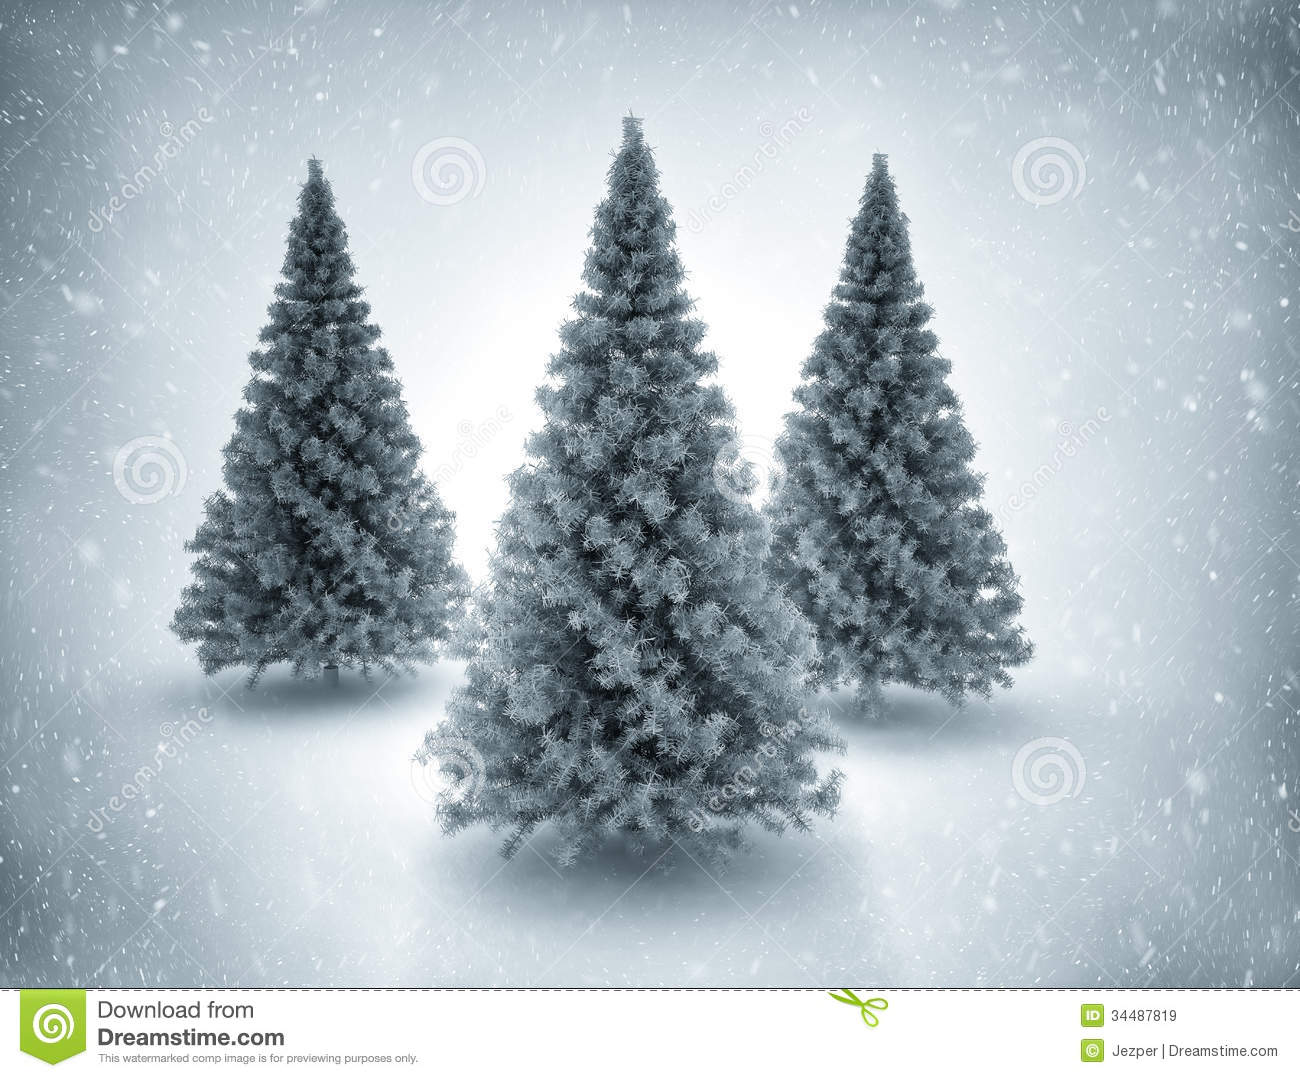 Christmas Tree Pictures High Resolution : Christmas trees and snow royalty free stock images image